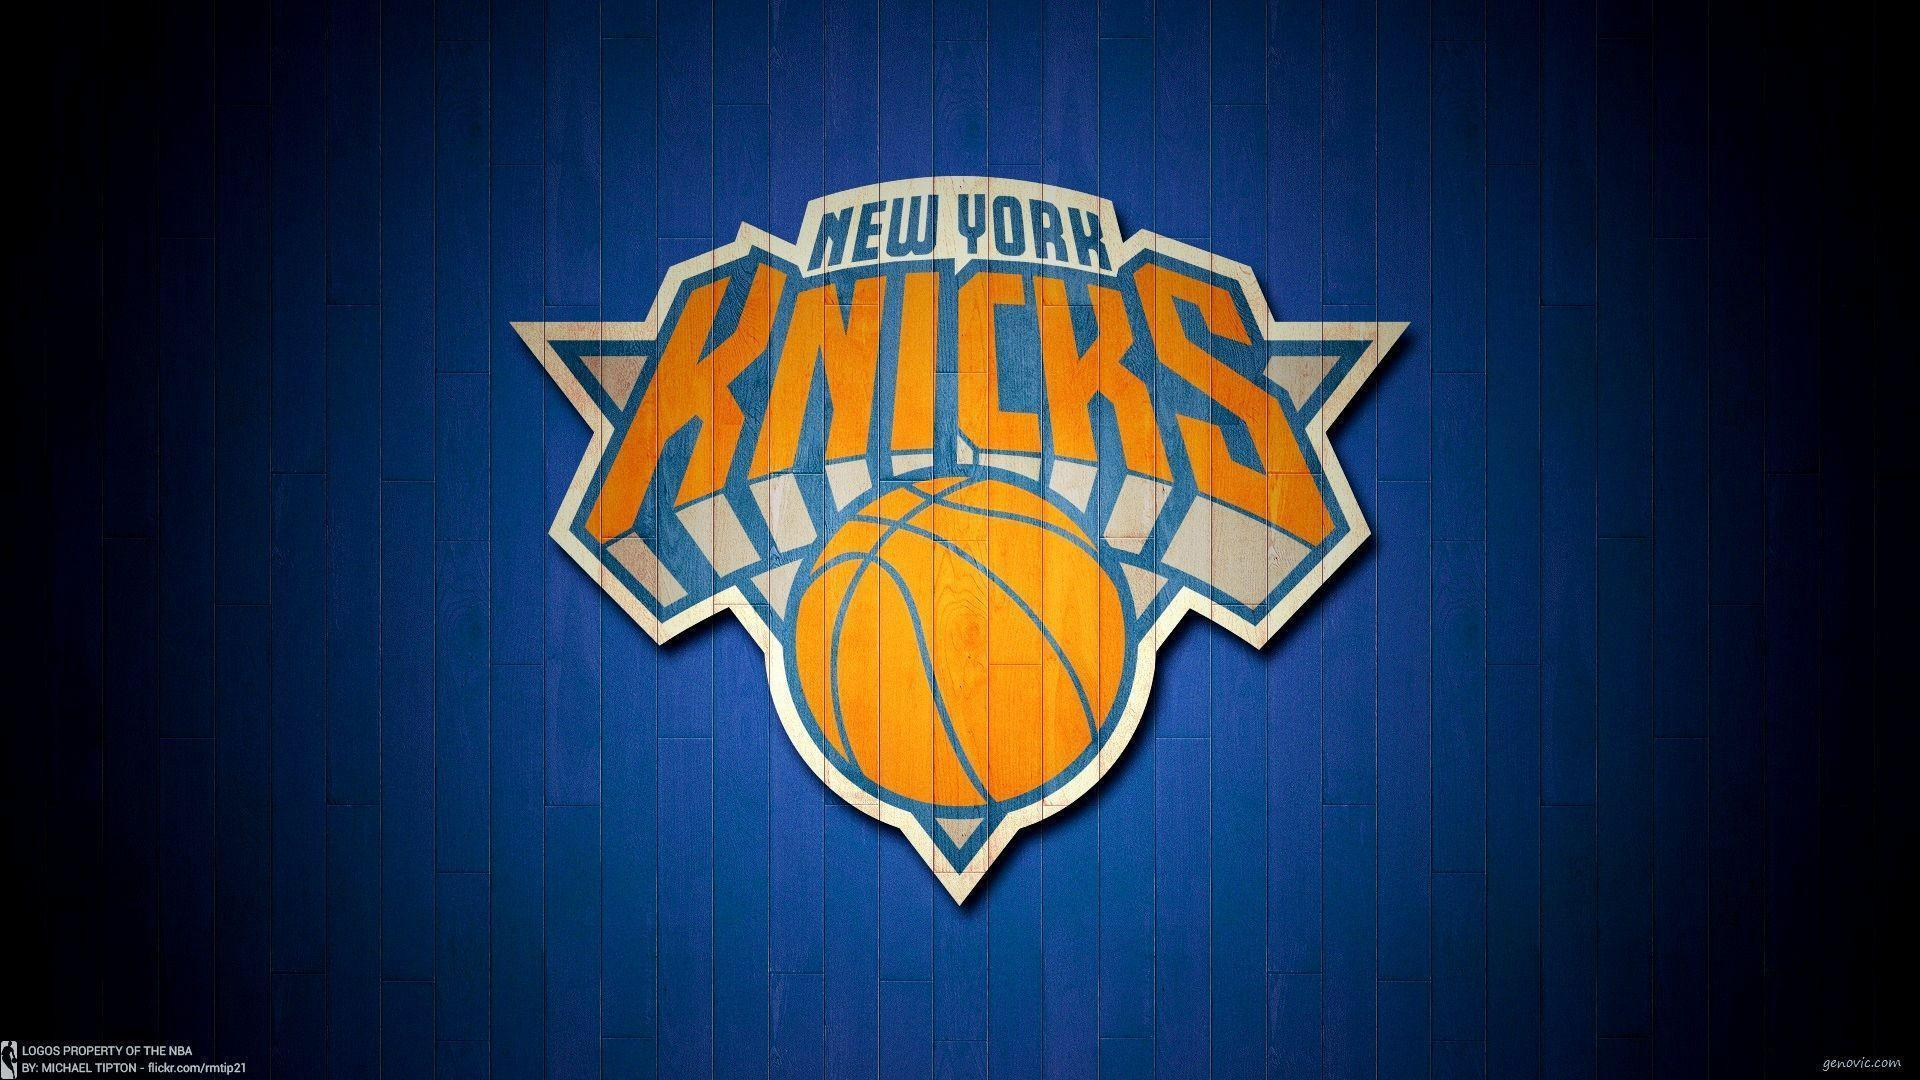 New York Knicks Wallpapers HD | Full HD Pictures